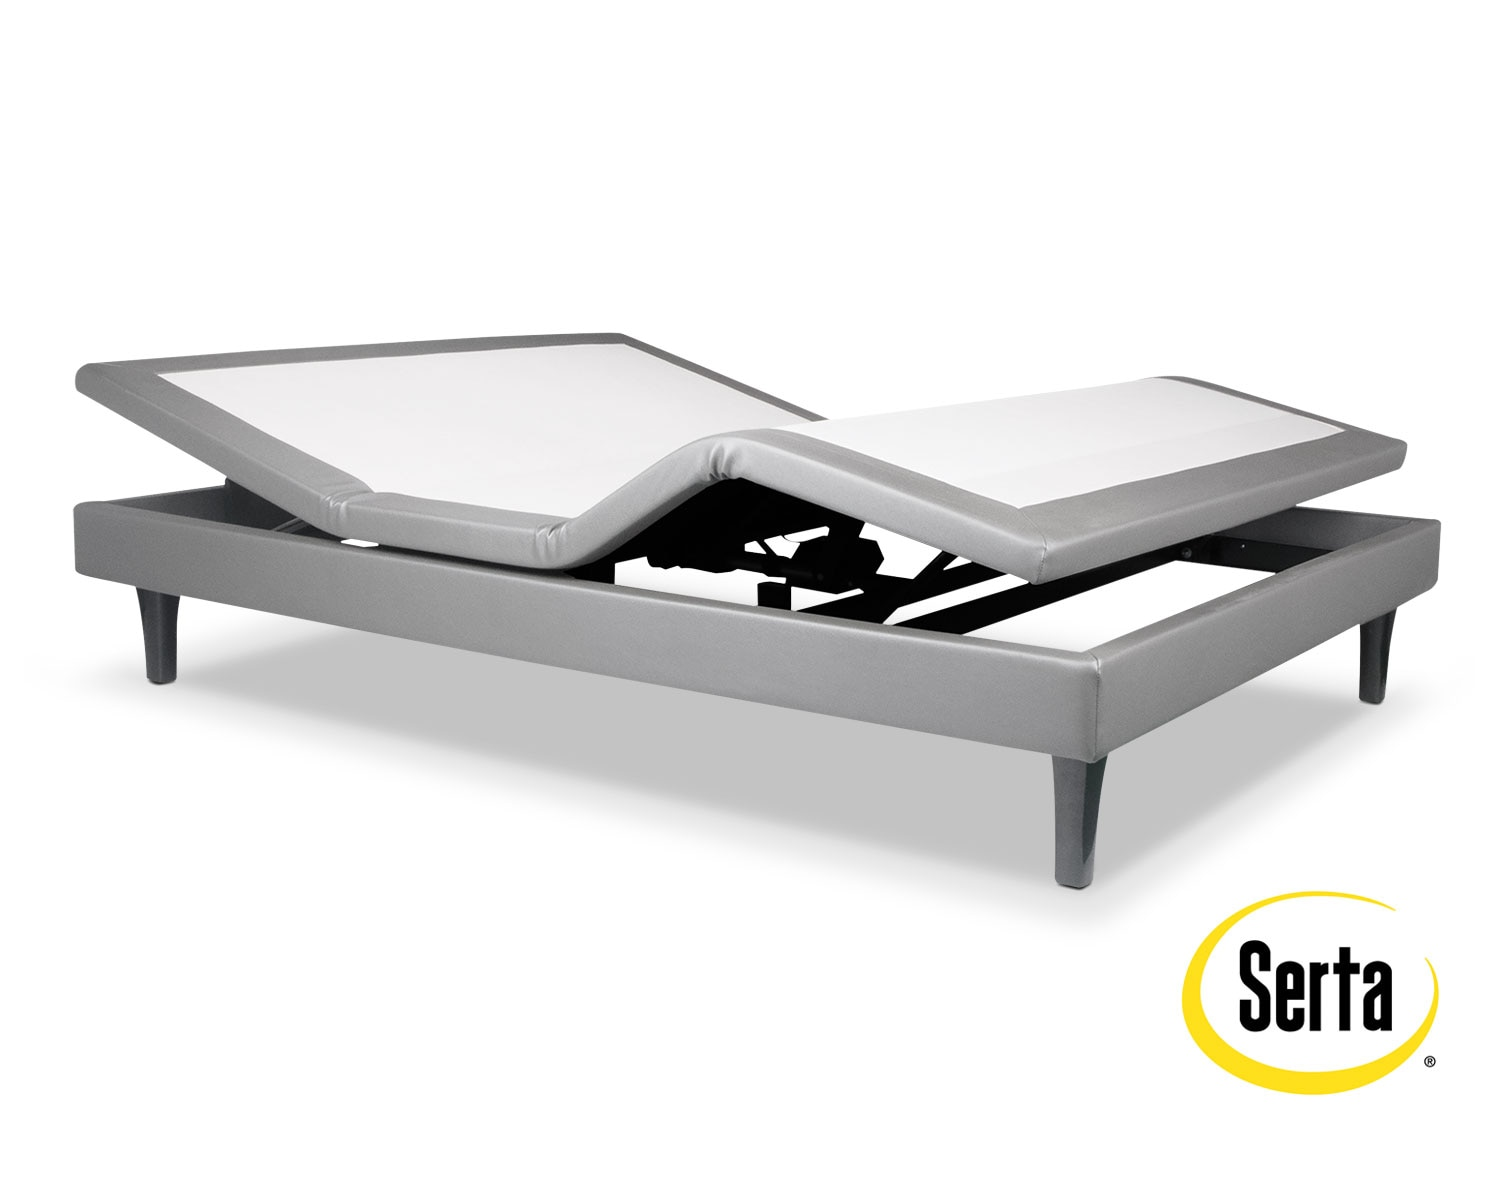 The Serta Motion Perfect III Adjustable Base Collection